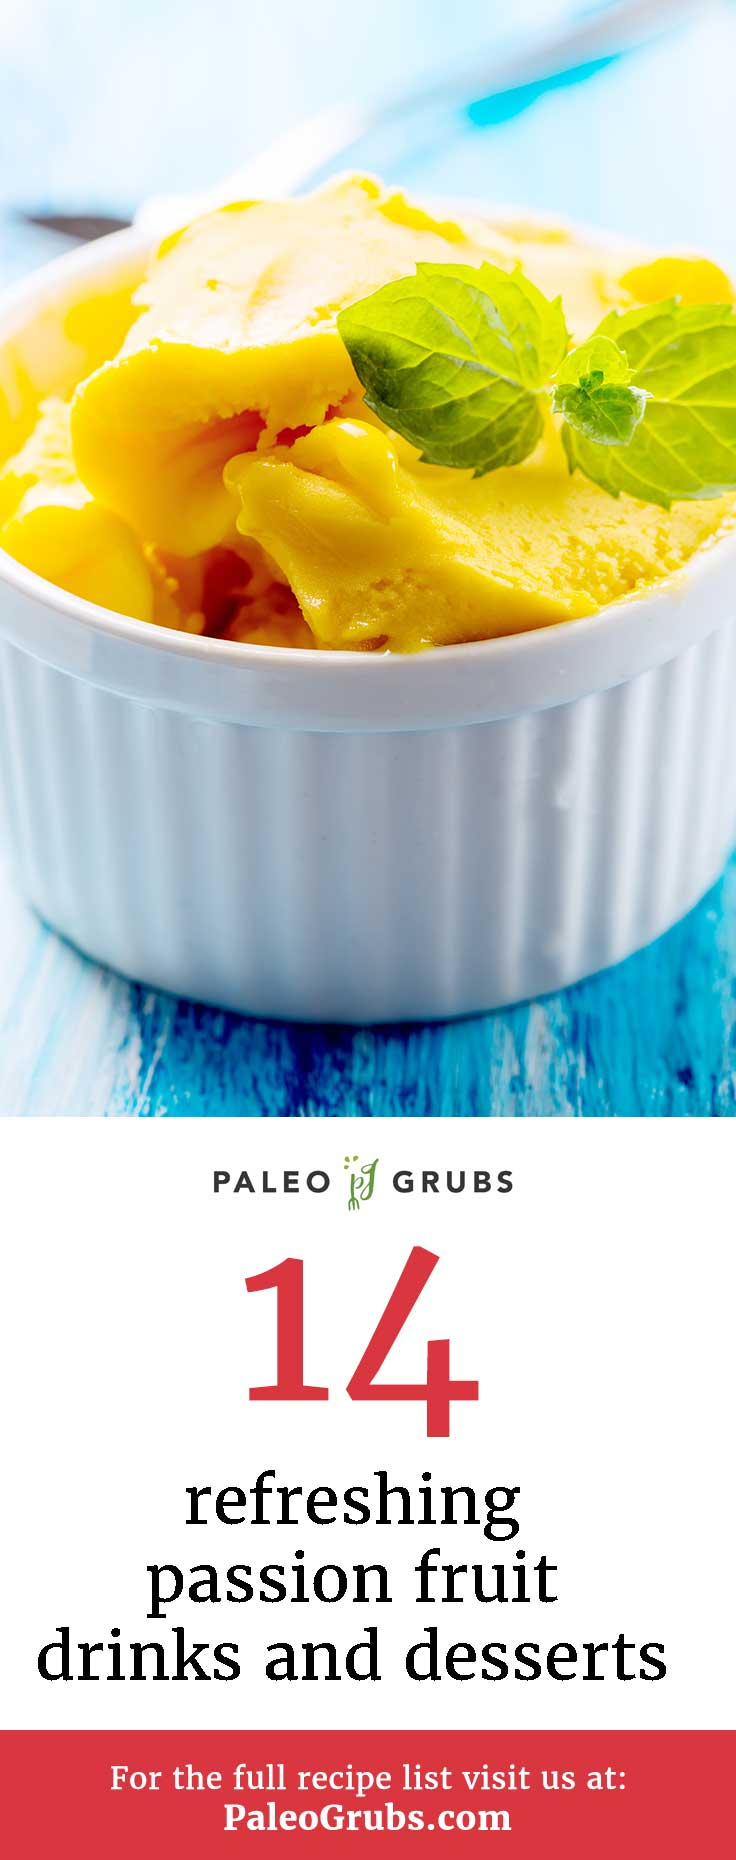 I had to find passion fruit in my local area, but once I did these passion fruit recipes provide plenty of ways to prepare it and add it to meals.  Passion fruit adds tropical and exotic flavors to smoothies, dressings, puddings, and cakes. Got your hands on some of these beauties? Try some of these paleo passion fruit recipes!